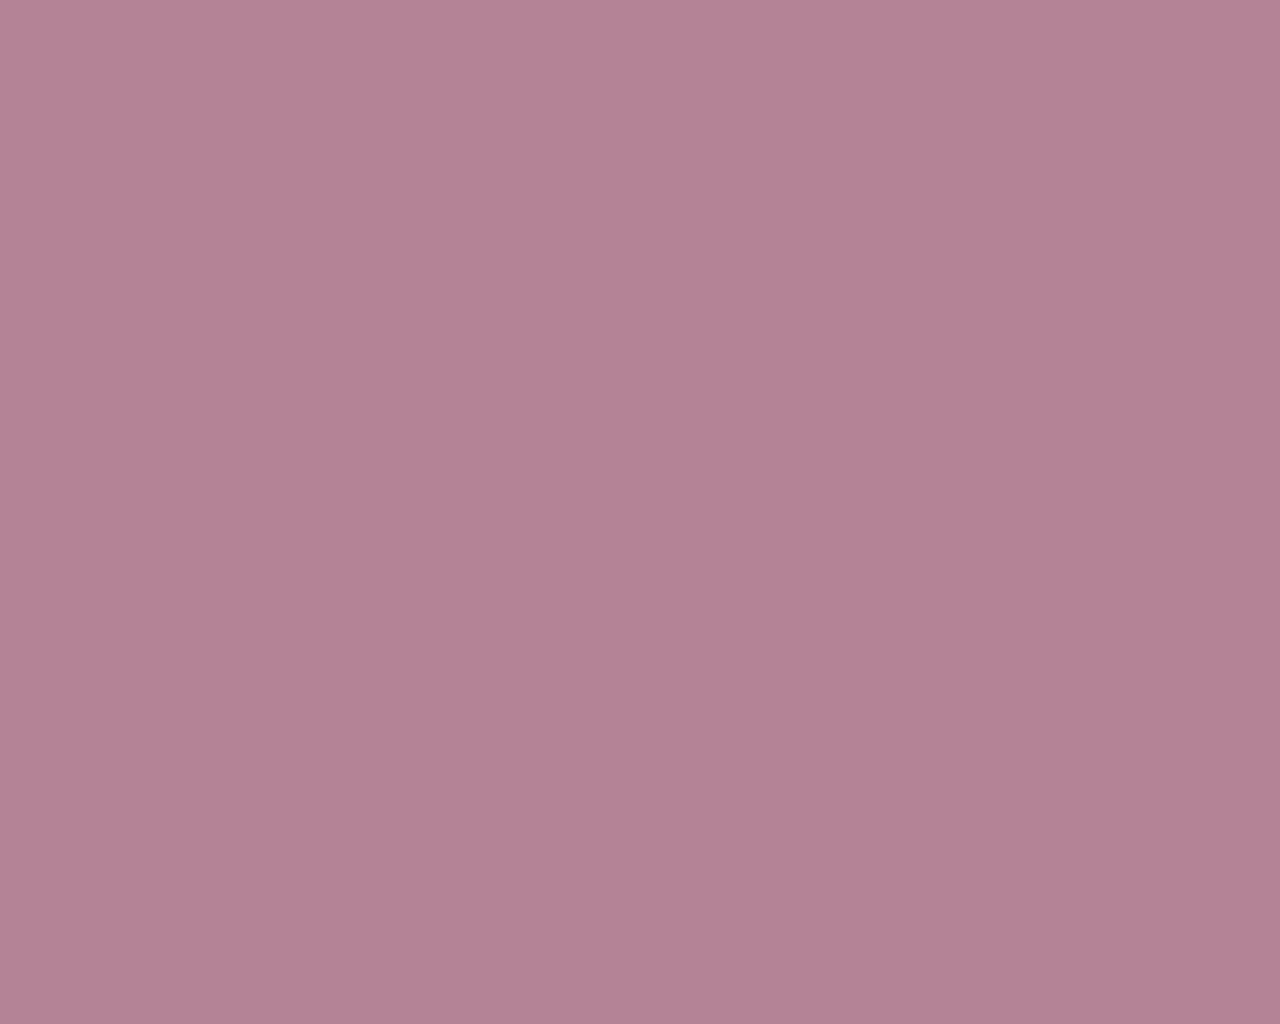 1280x1024 English Lavender Solid Color Background